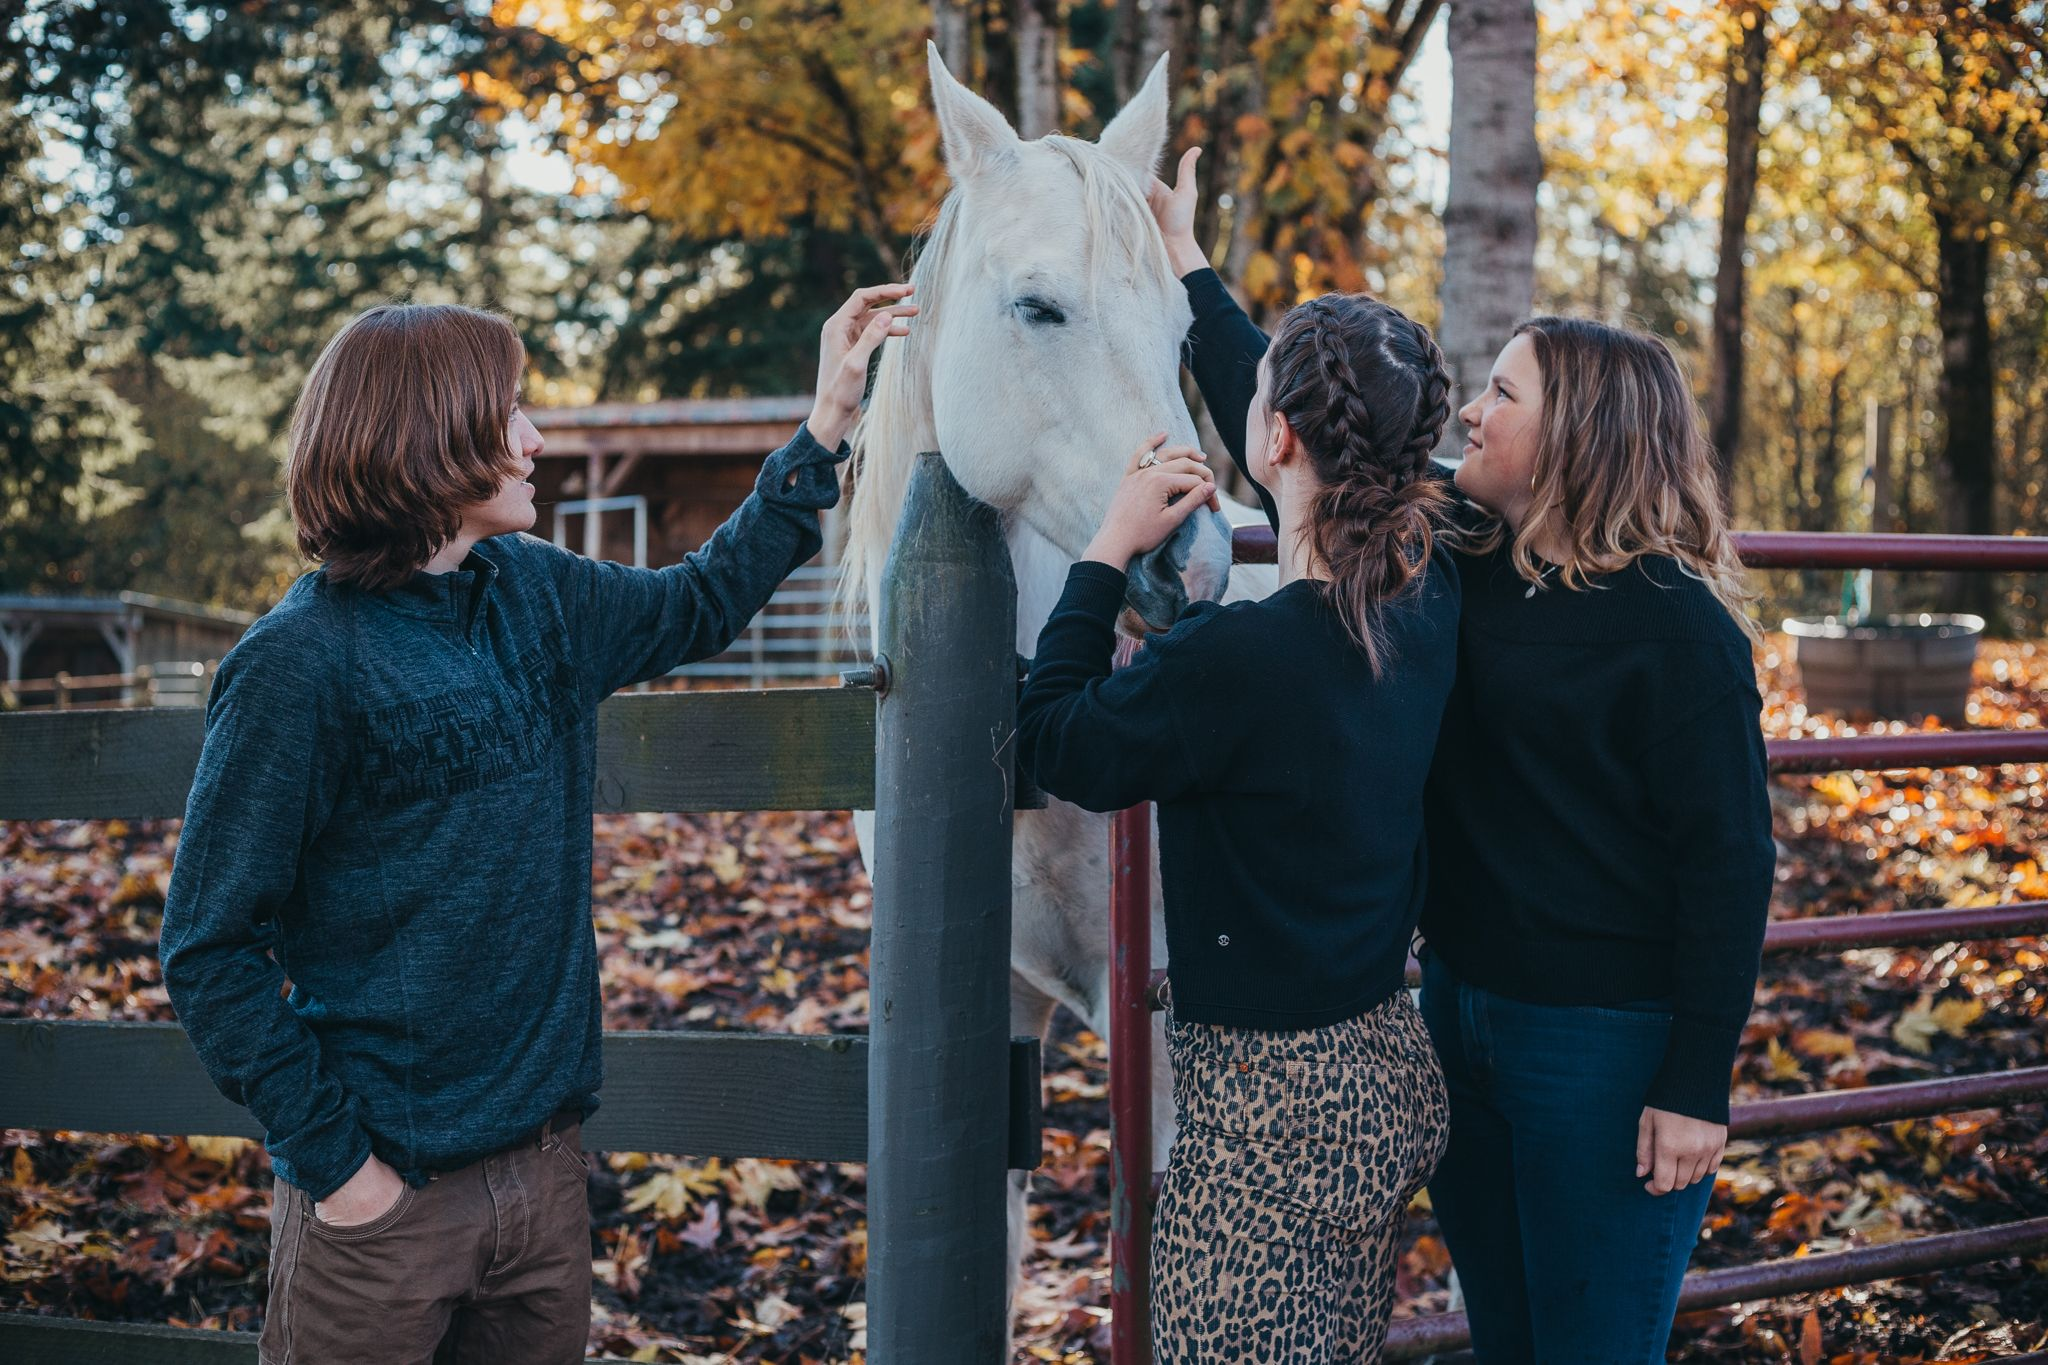 two girls and a boy petting a white horse